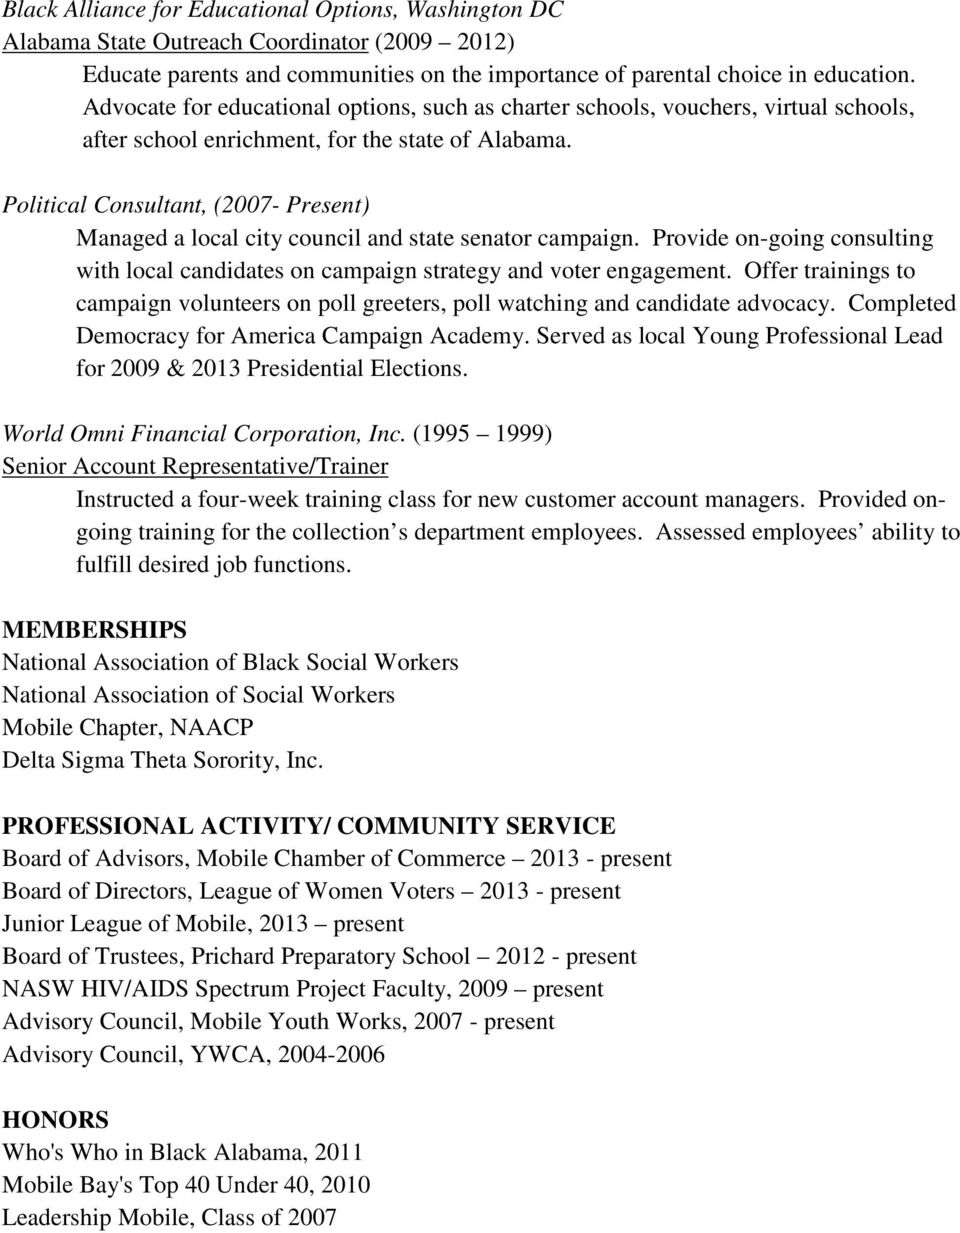 Political Consultant, (2007- Present) Managed a local city council and state senator campaign. Provide on-going consulting with local candidates on campaign strategy and voter engagement.